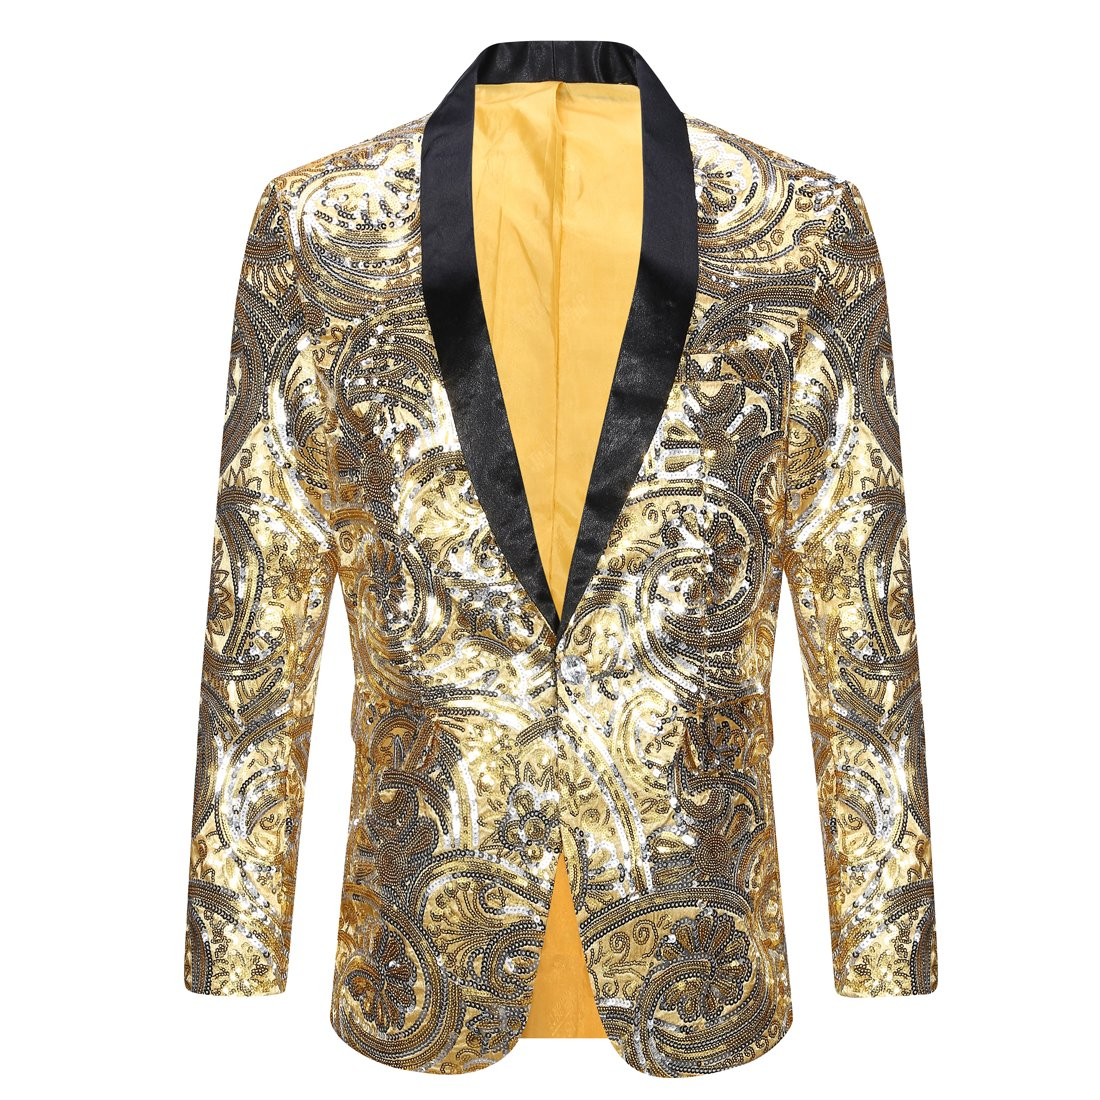 PYJTRL Men's Pink Gold Flower Pattern Wedding Groom Singer Sequins Suit Jacket (Gold, Tag 4XL (US XXL) Chest 48'')